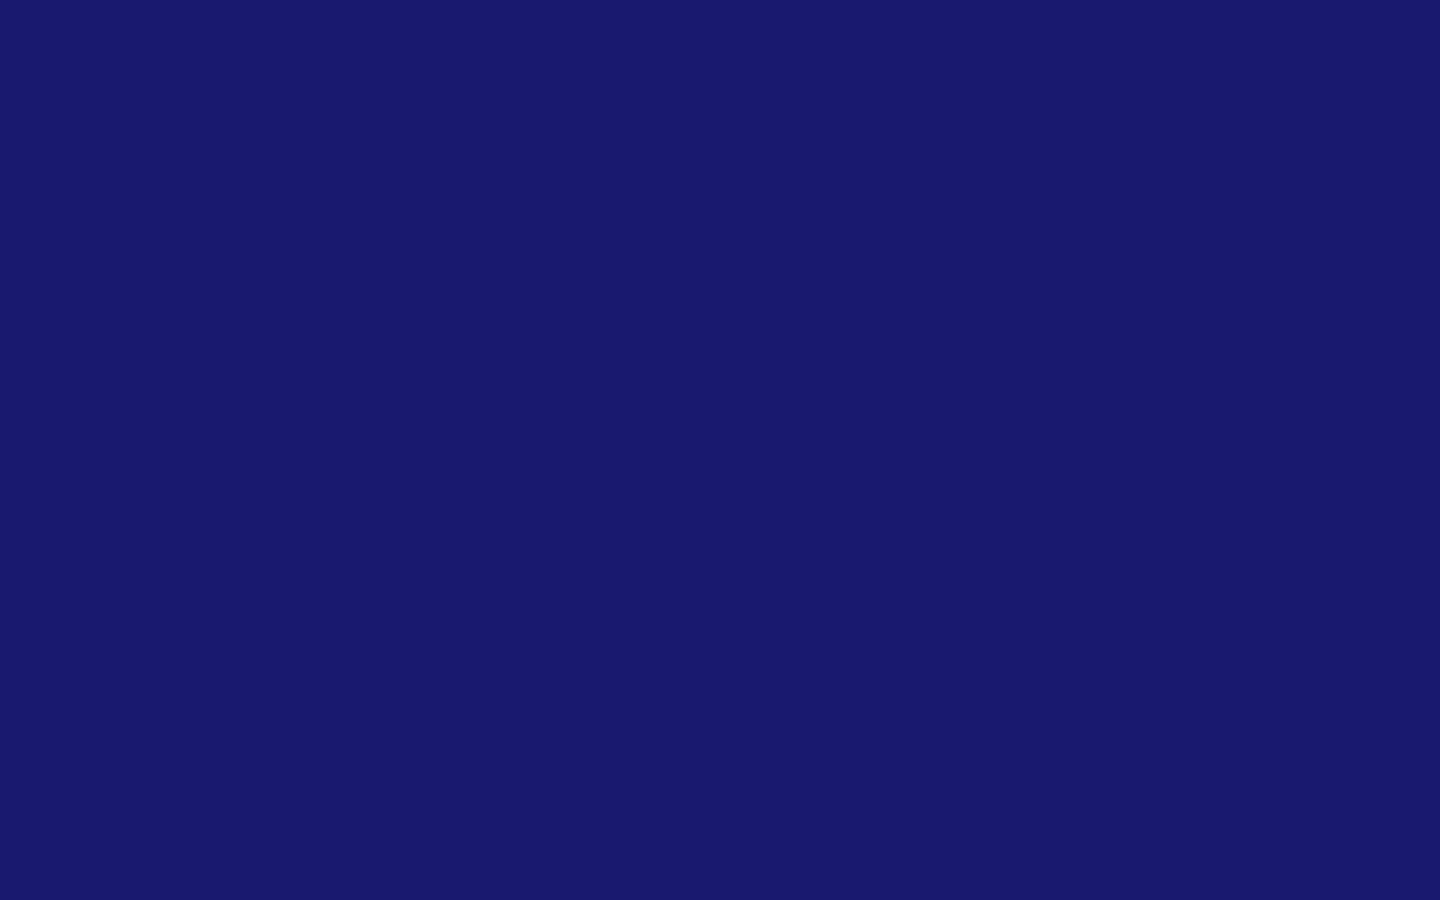 1440x900 Midnight Blue Solid Color Background